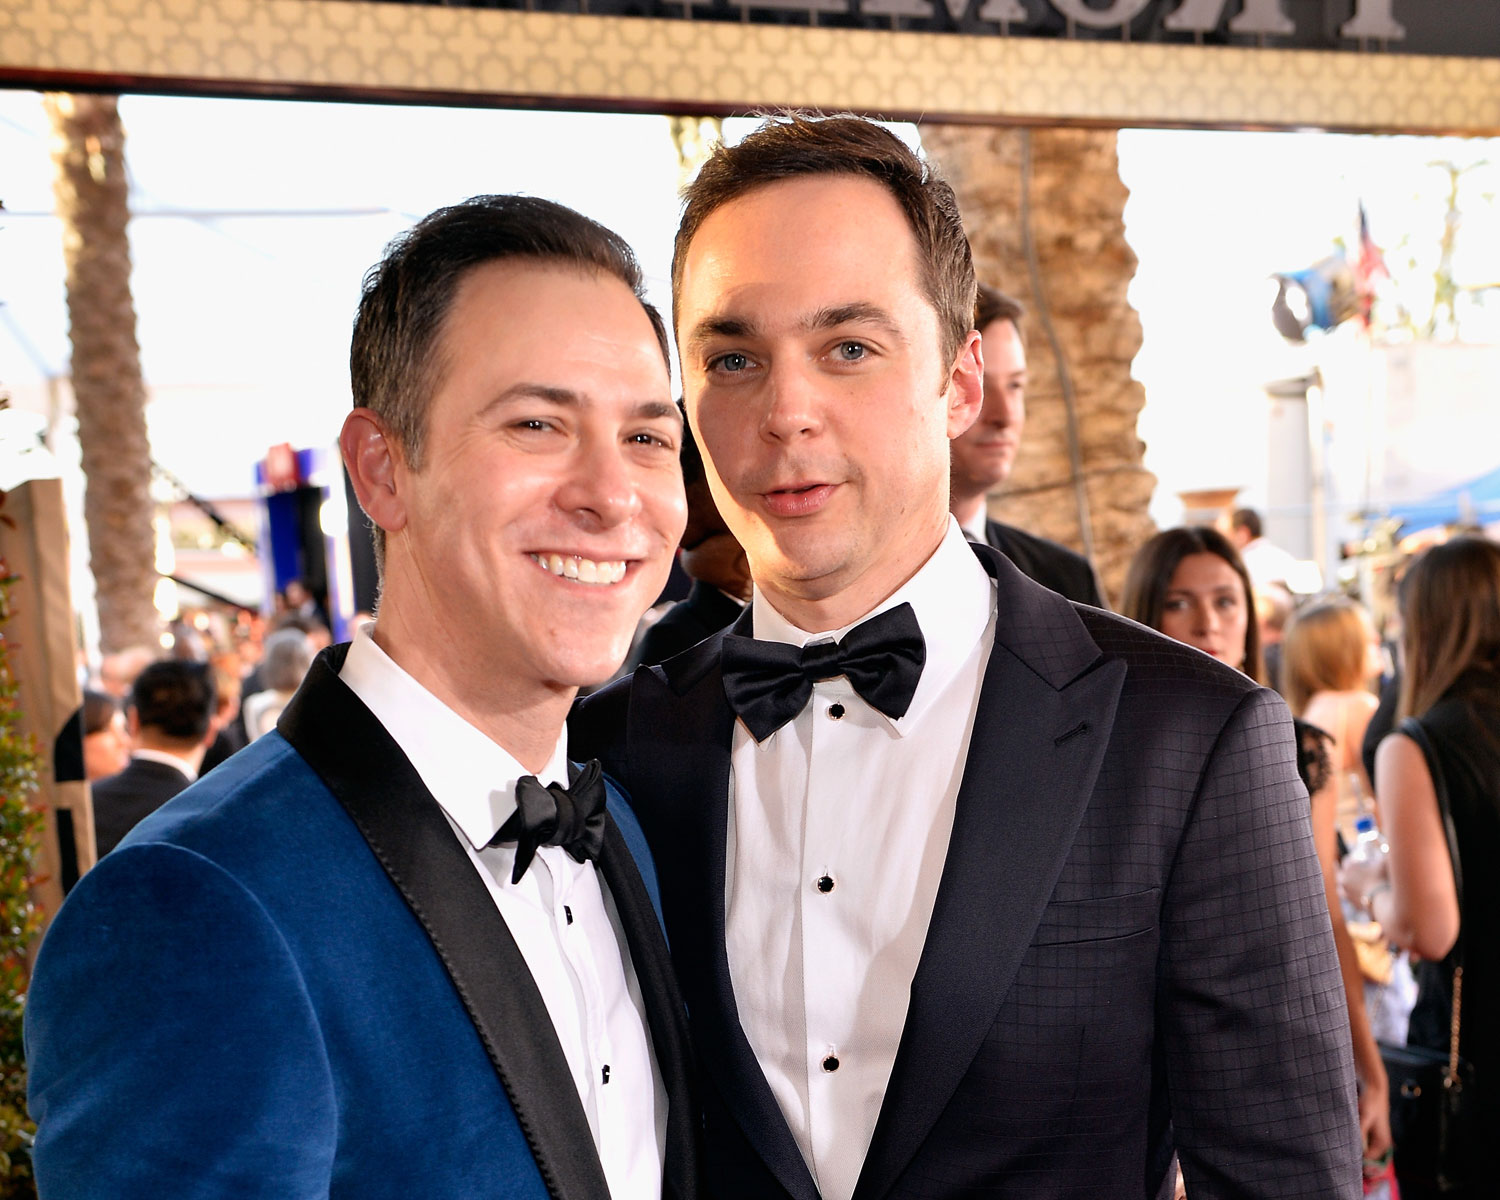 Jewelry 2018 >> Jim Parsons' Wedding Photos Are Insanely Cute: See More Here